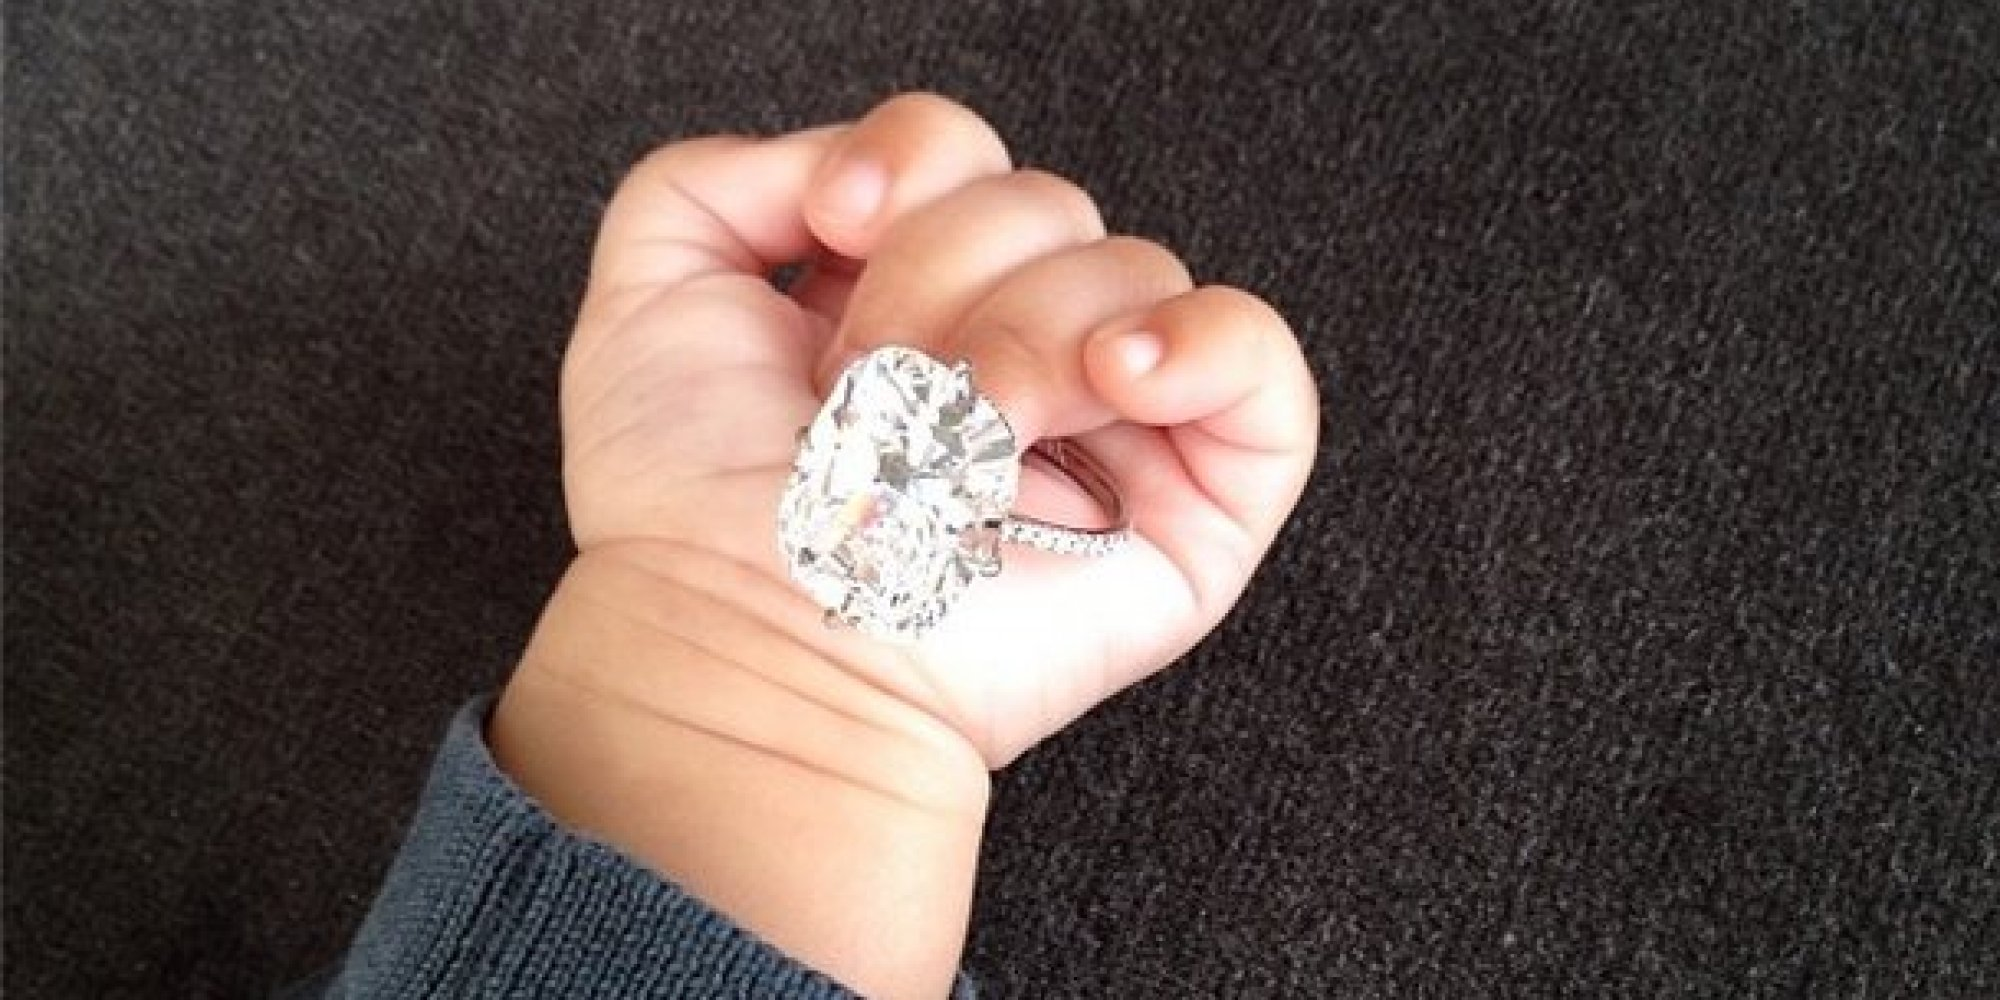 Kim Kardashian Posts New Years Photo Of Her Engagement Ring And